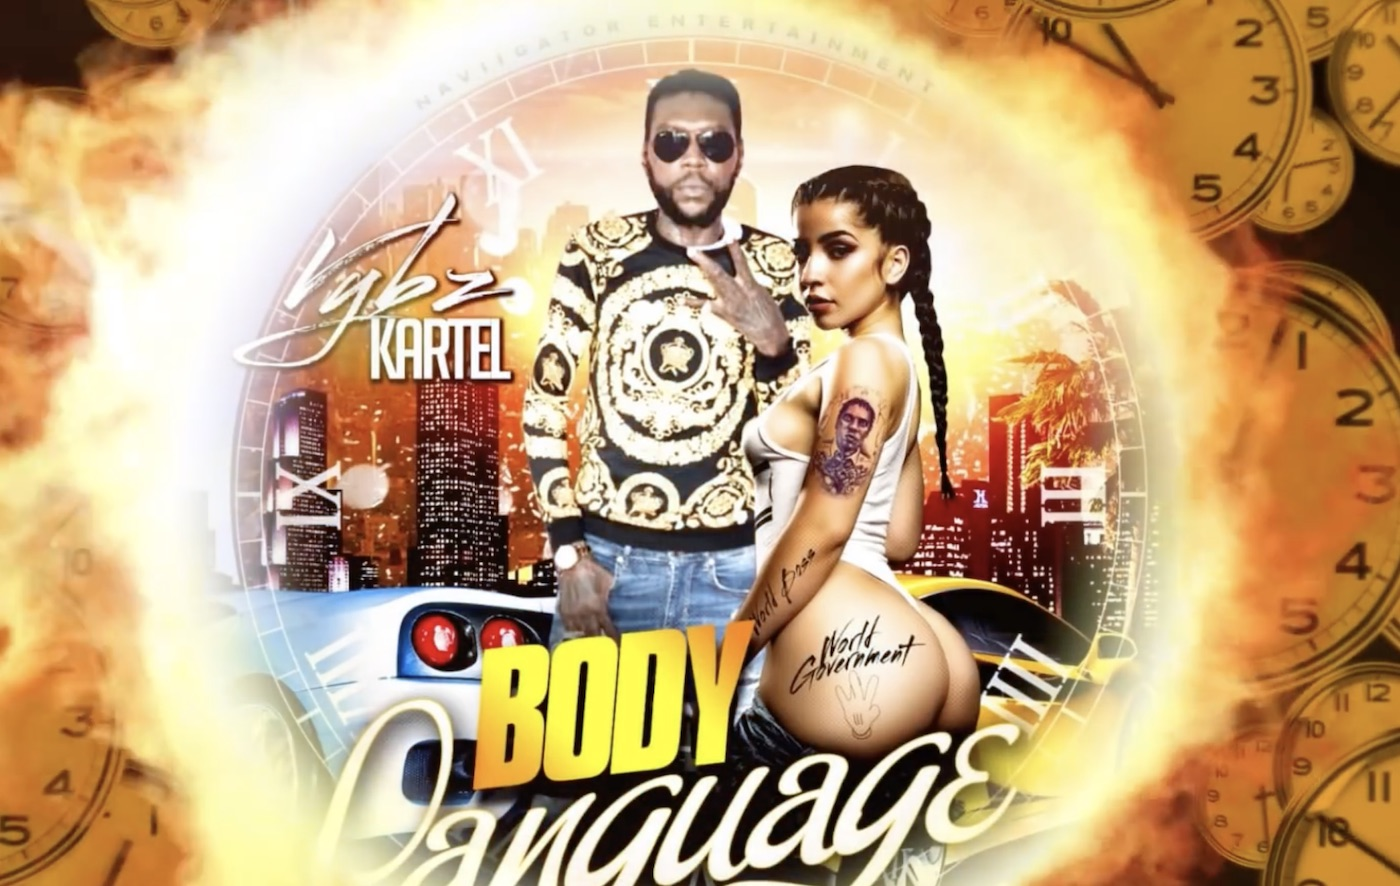 Le son Dancehall de Vybz Kartel - Body Language (2020)